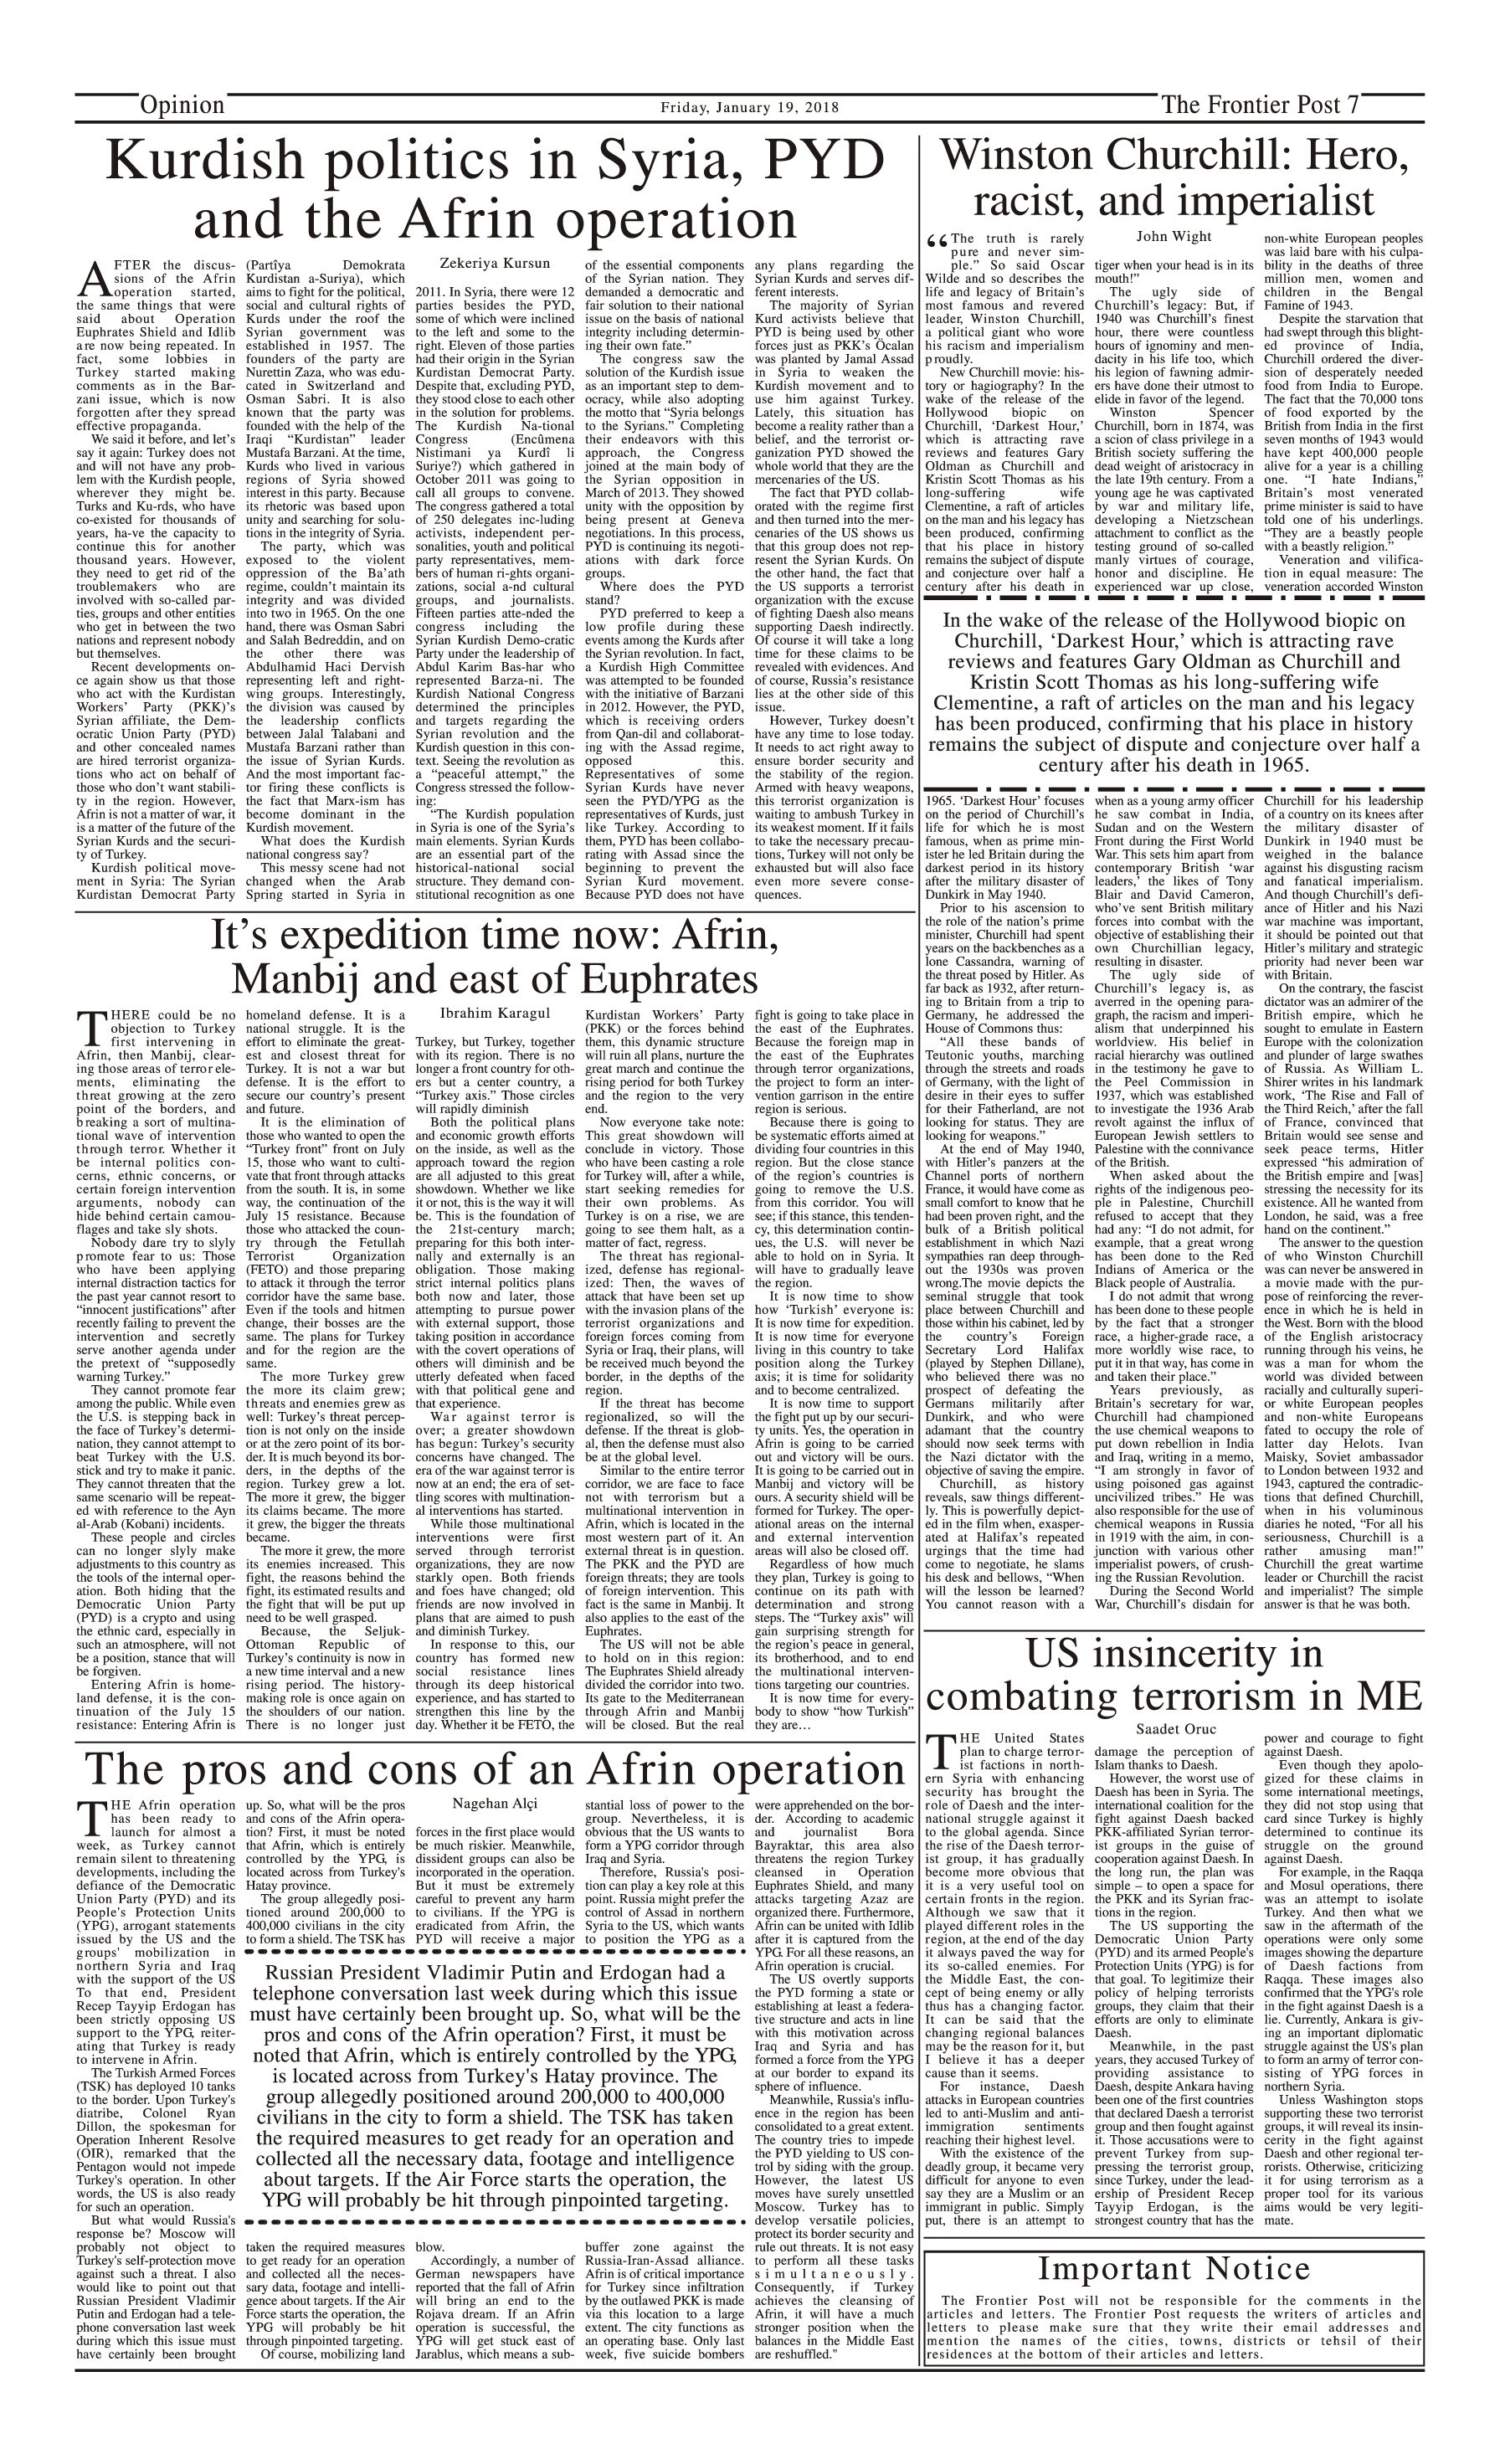 Opinion Page 19-1